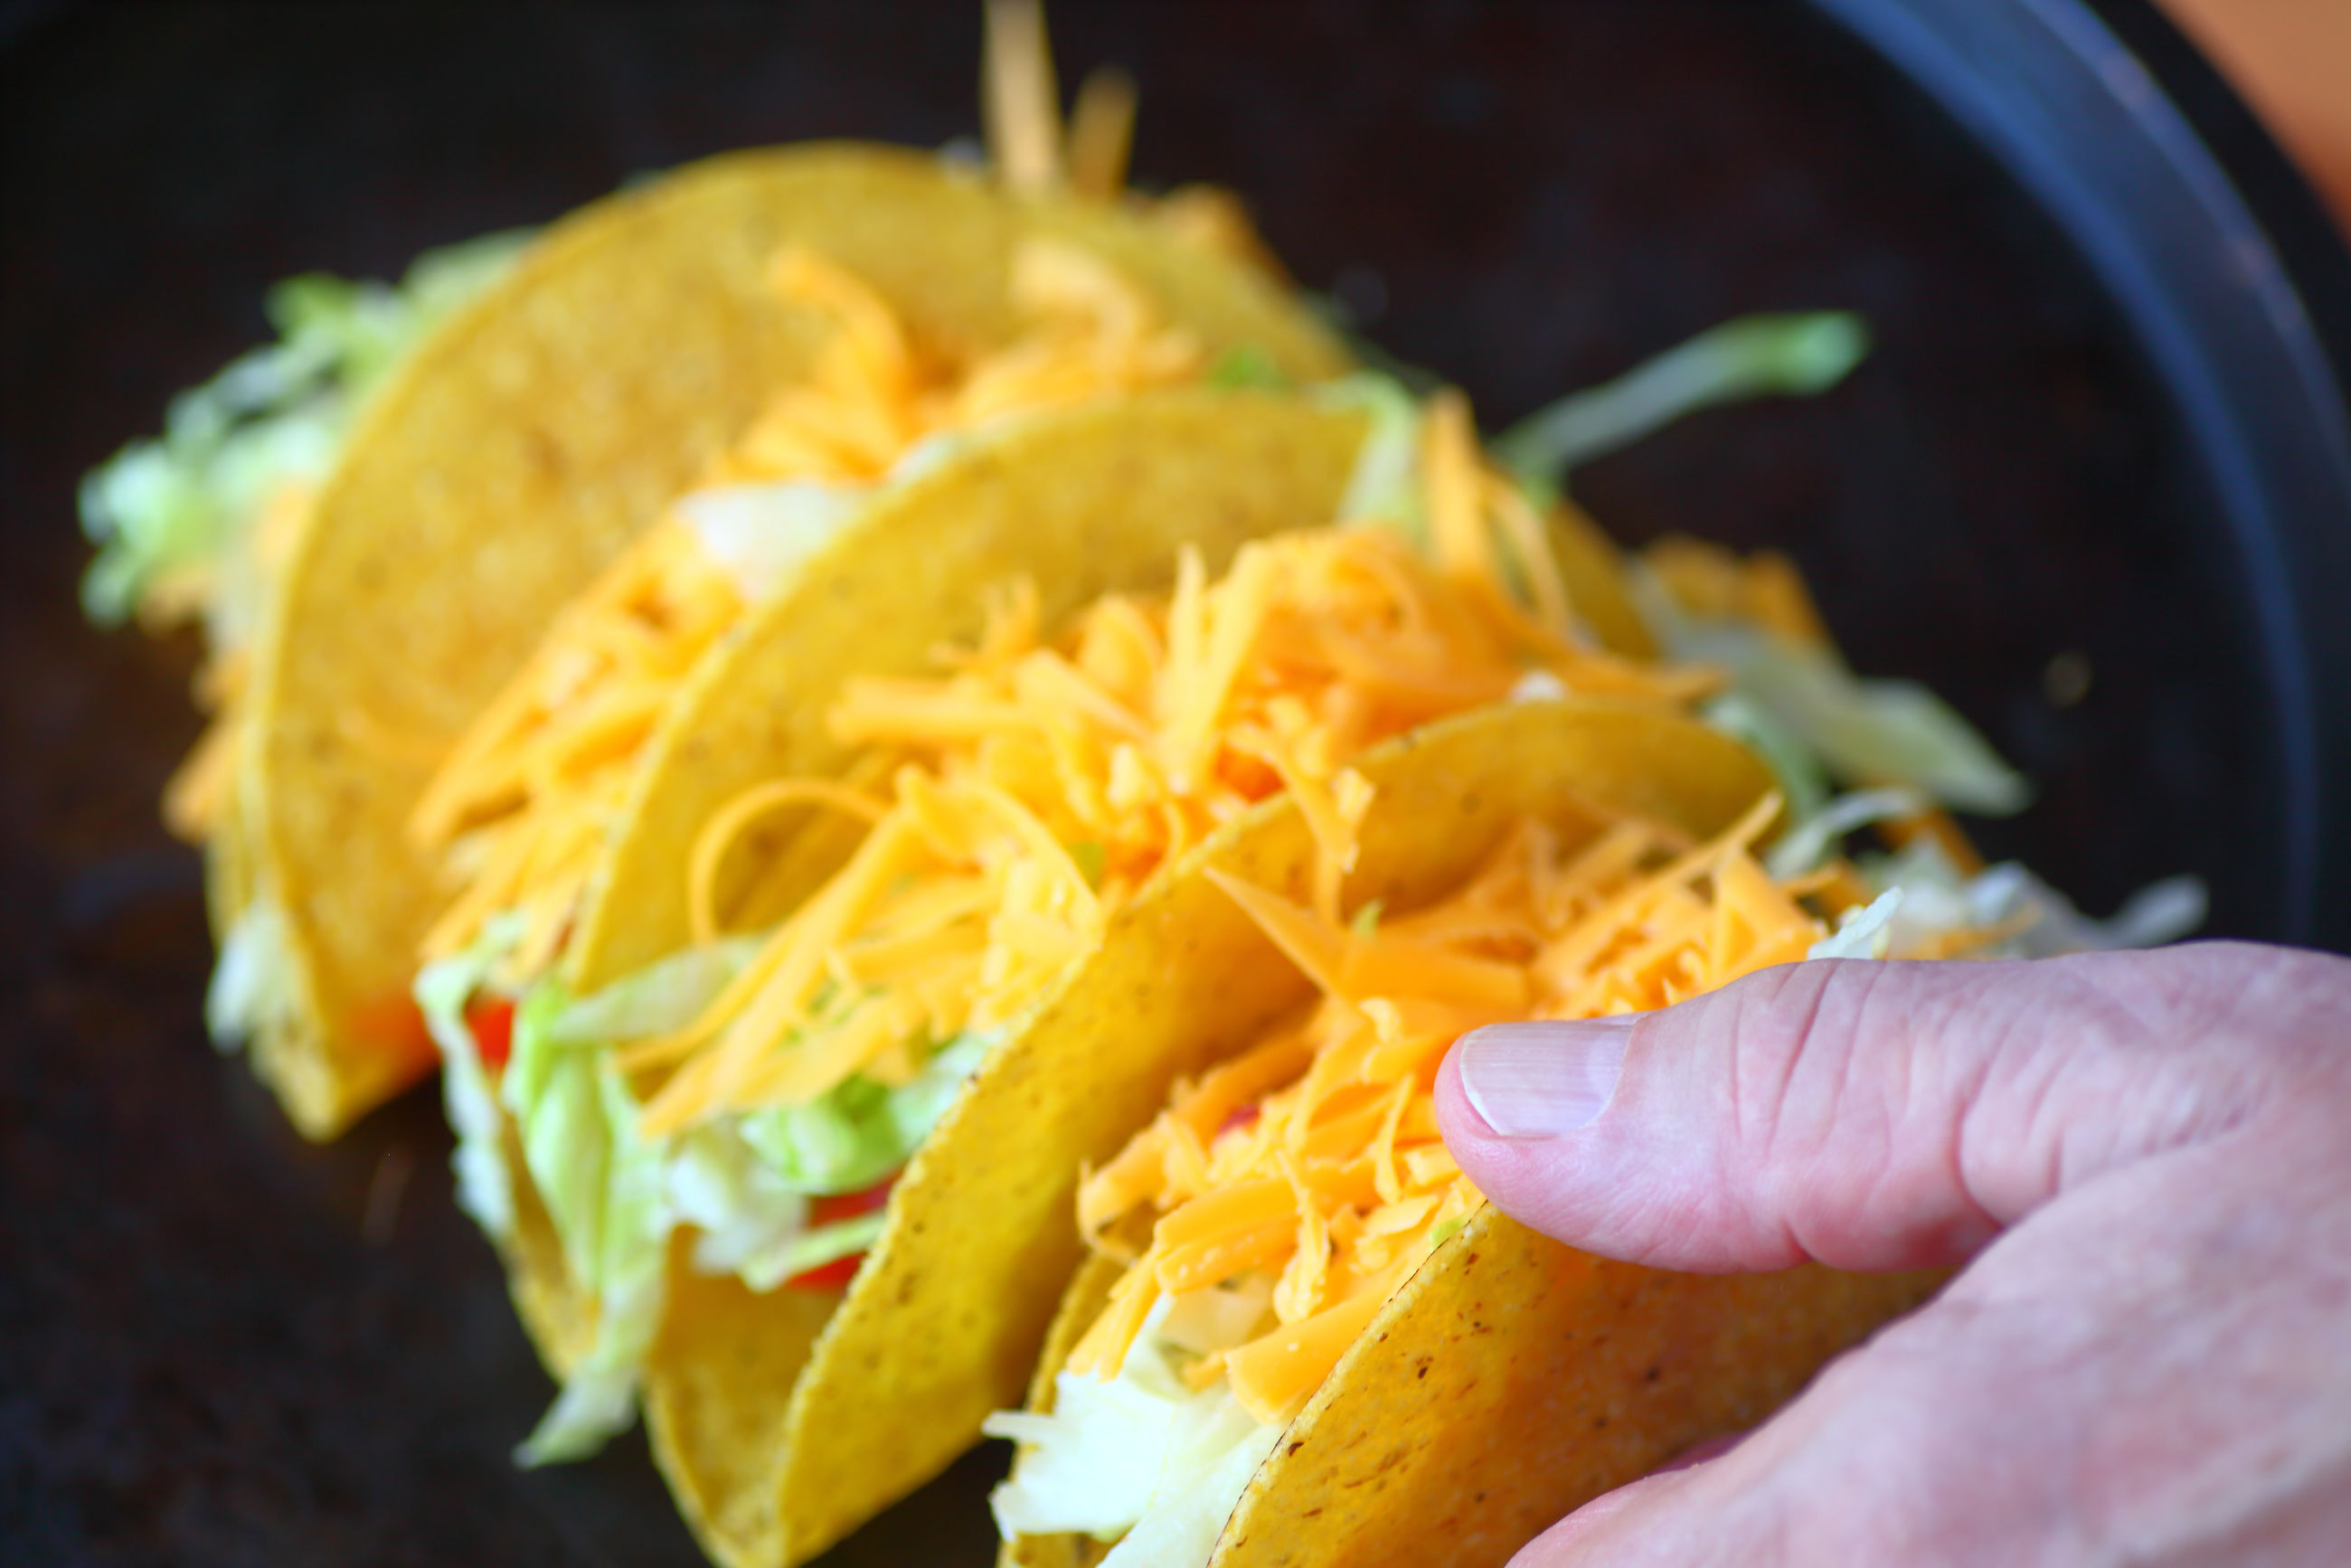 Cropped hand of person holding tacos